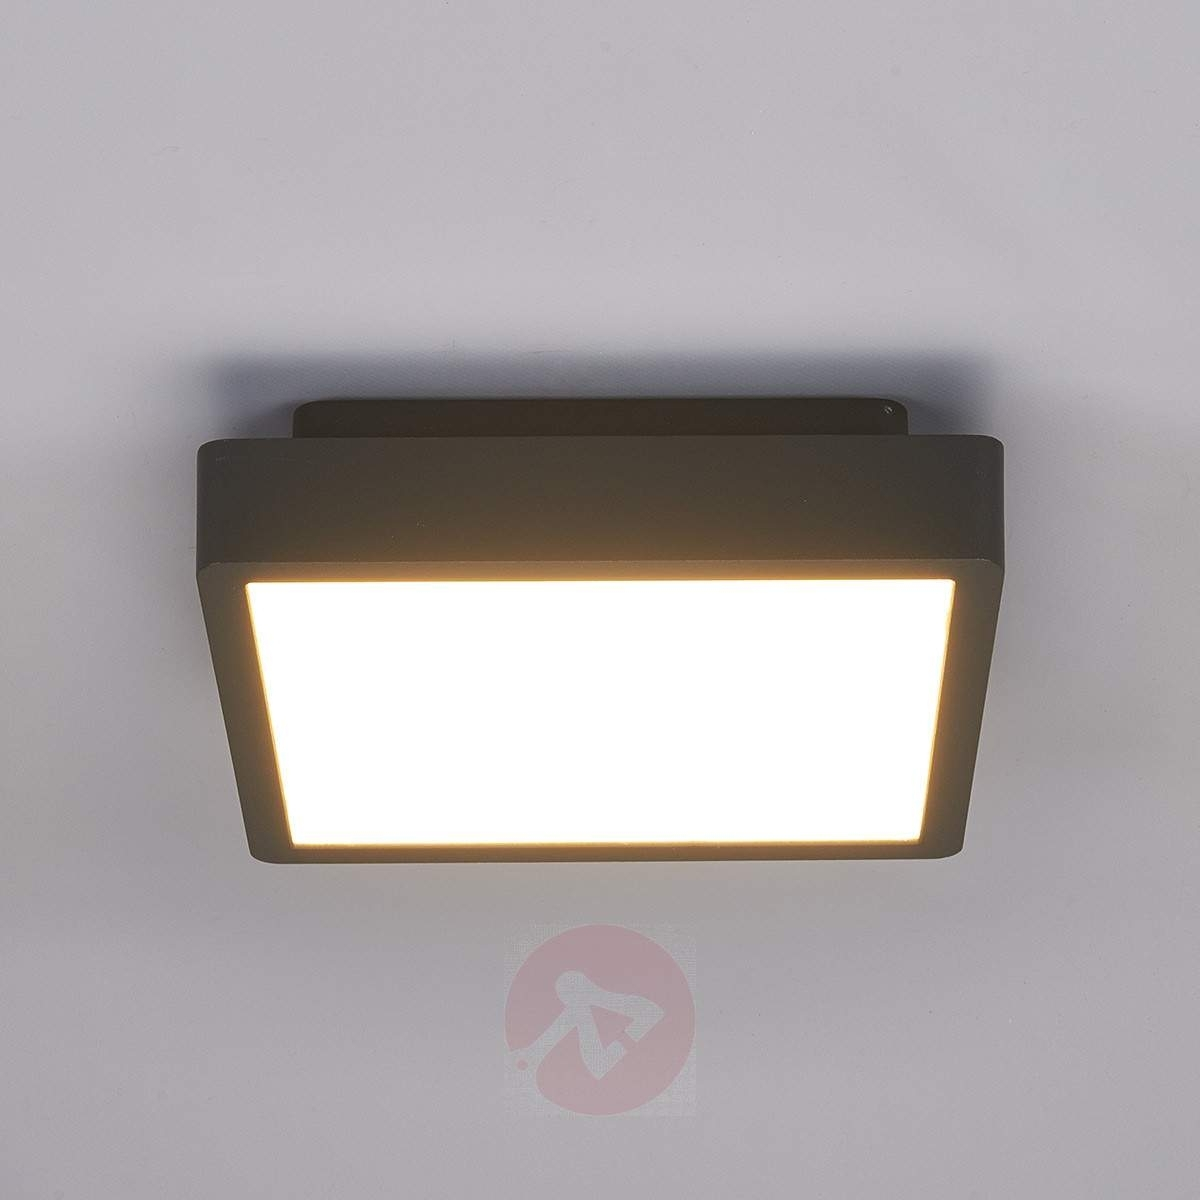 Inspiration about Rectangular Led Outdoor Ceiling Light Talea | Lights.co.uk Pertaining To Outdoor Ceiling Spotlights (#1 of 15)